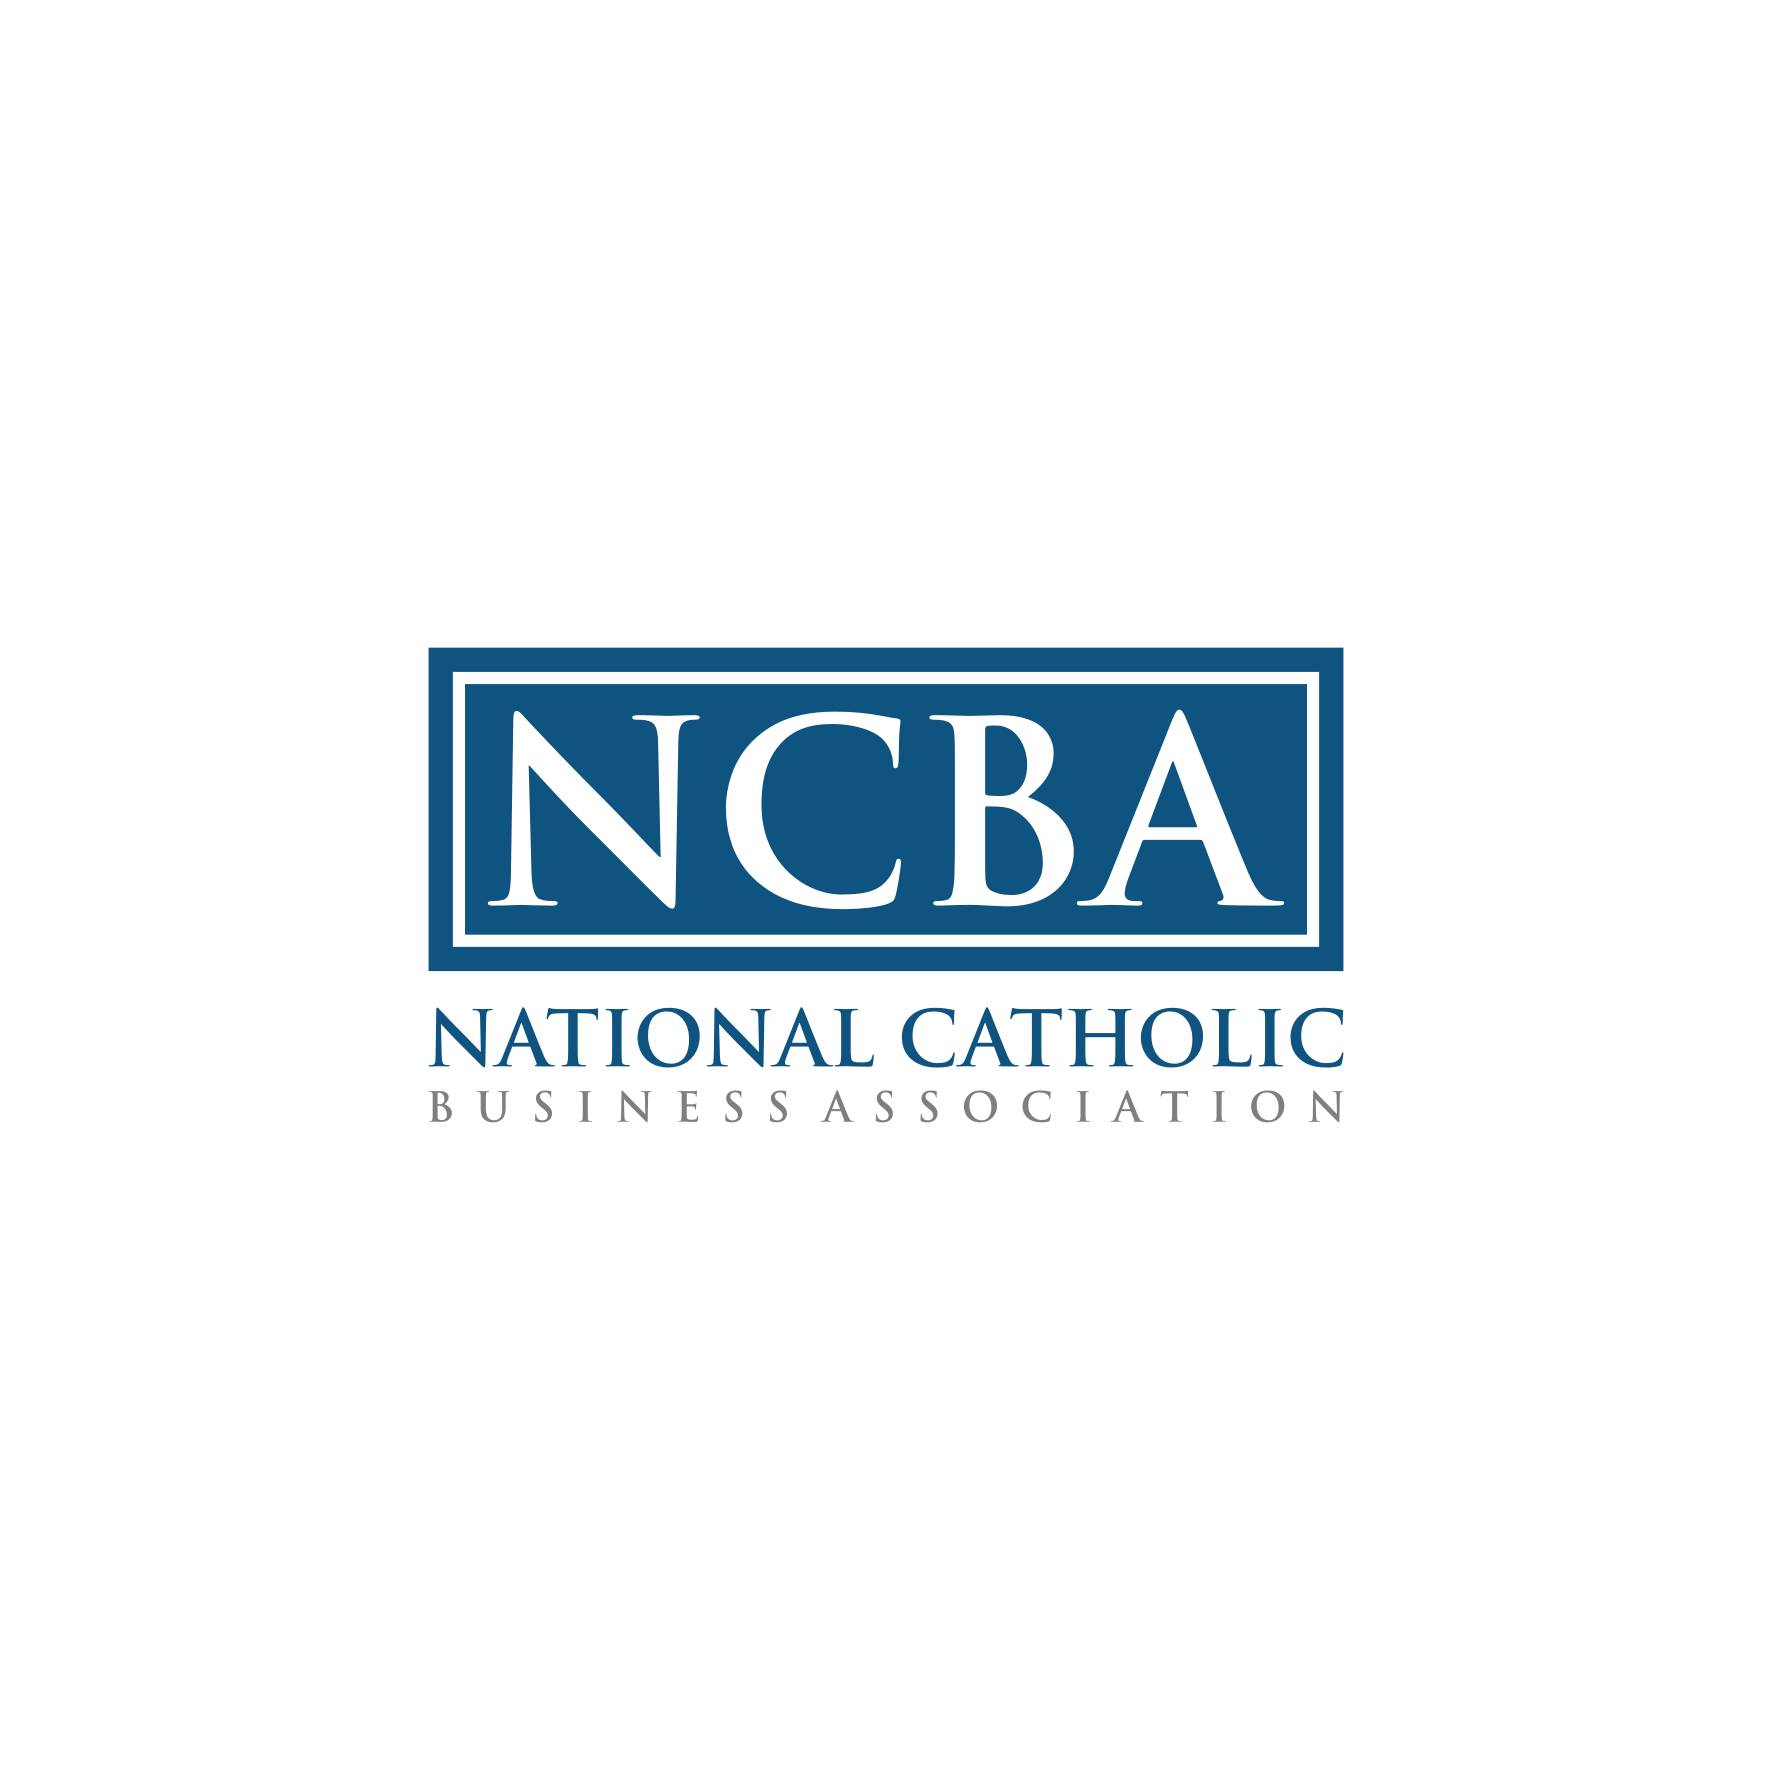 Winning Entry #23 for Logo And Business Card Design contest - Religious Logo And Business Card Design required by The National Catholic Business Association - original